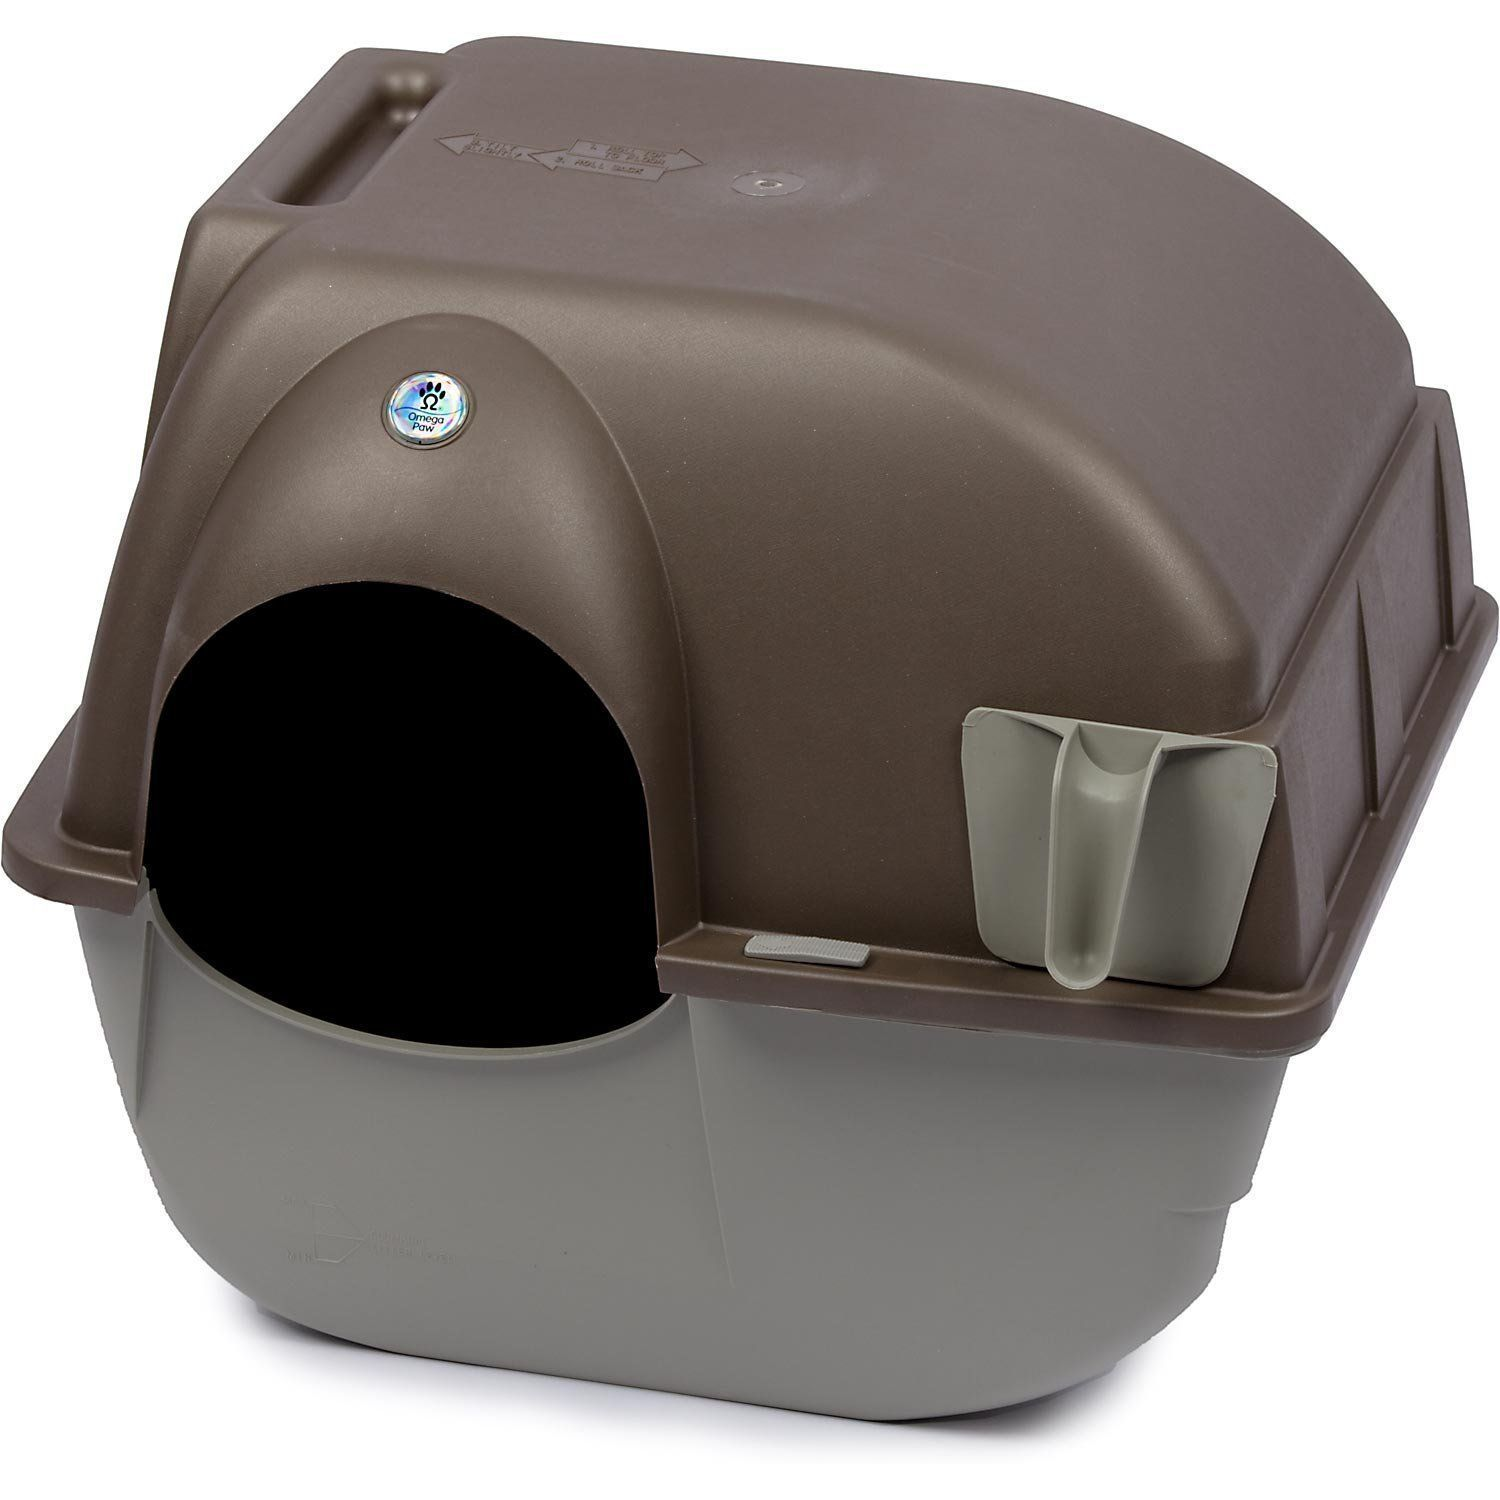 Top 10 Best Amazon Self Cleaning Litter Box Comparison Self